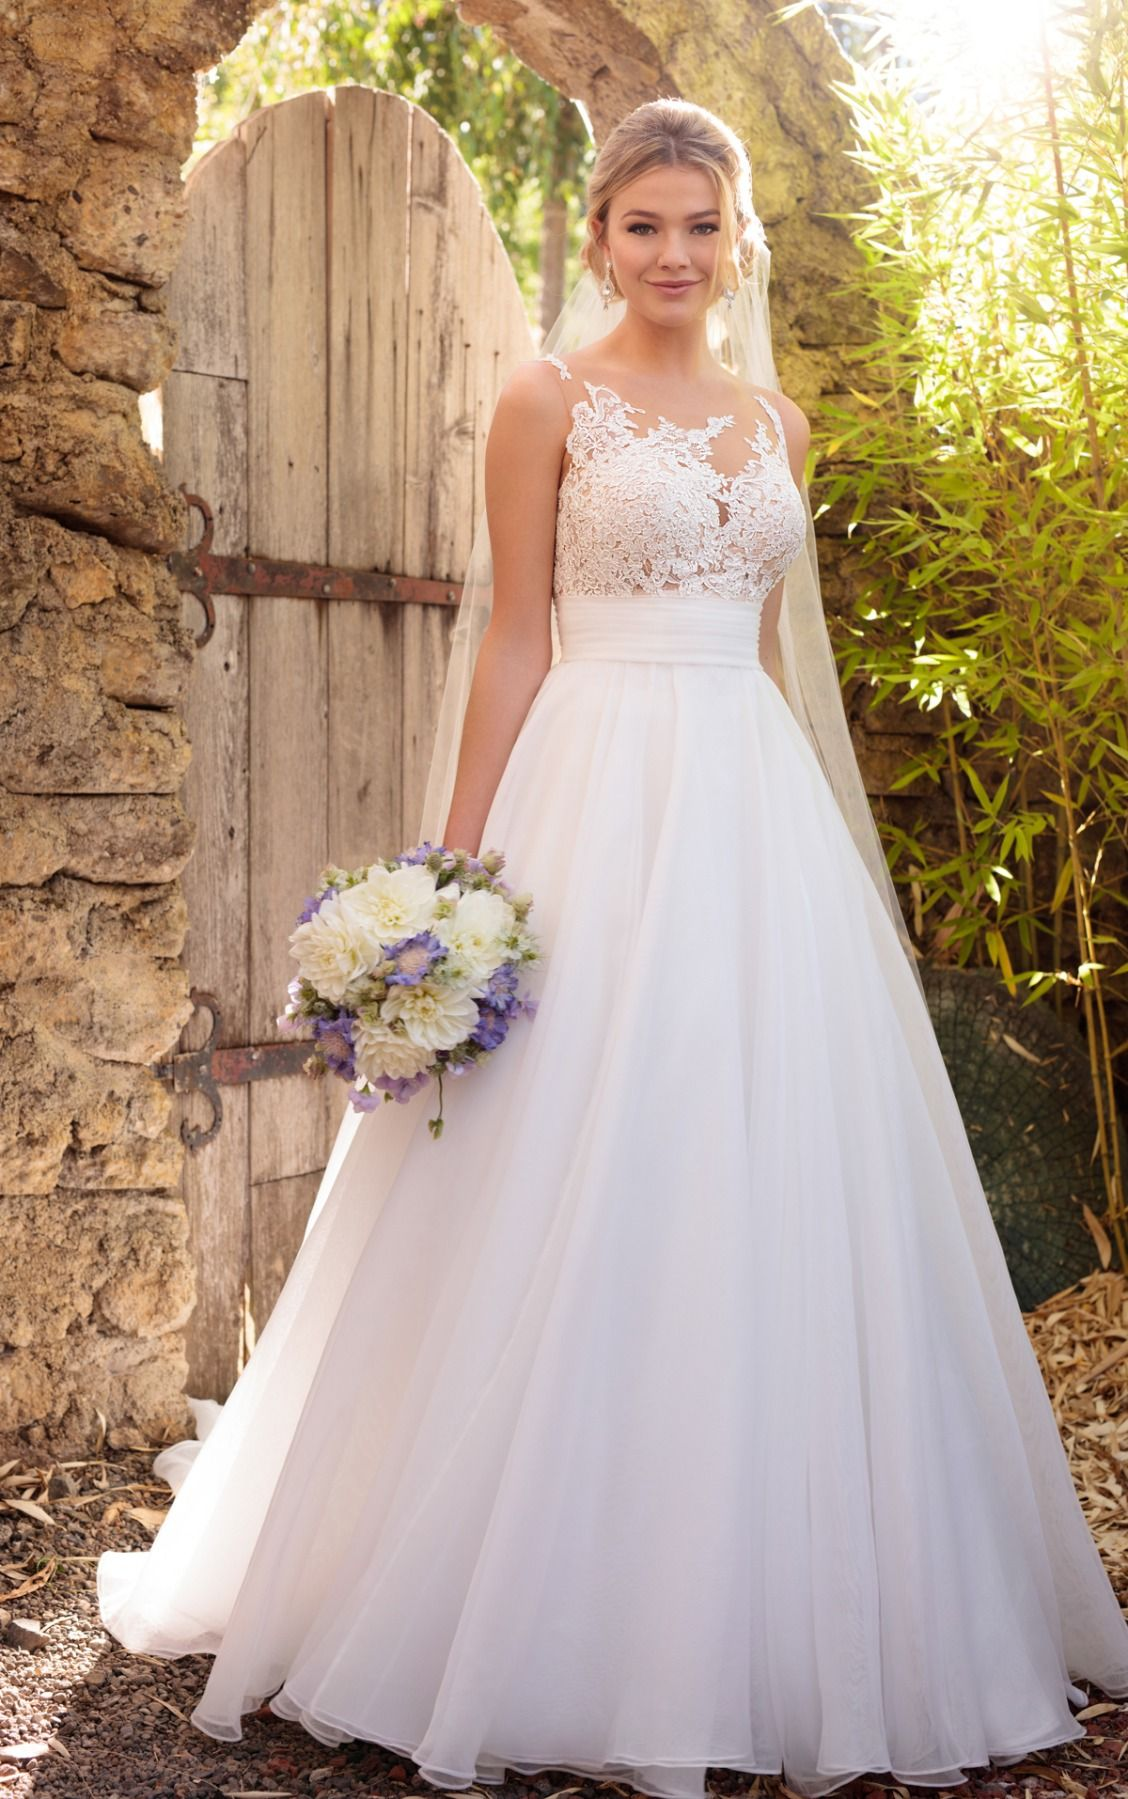 Unique Asymmetrical Neckline Wedding Dress In 2019 Essense Of